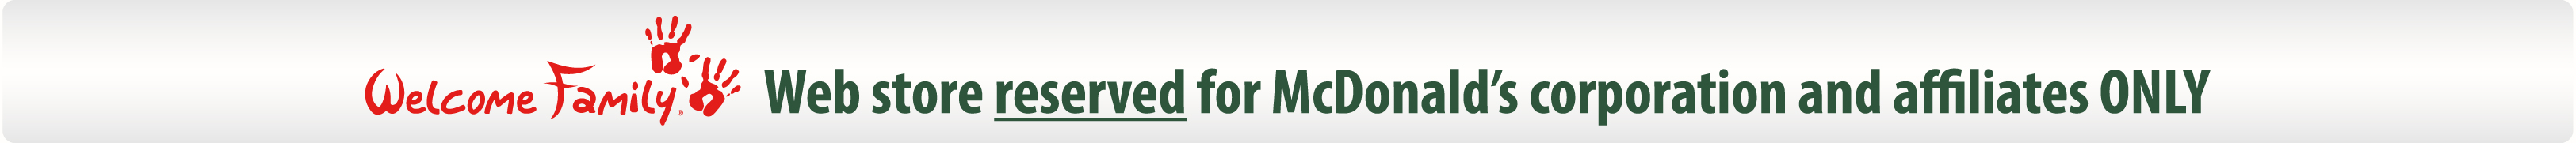 Web Store reserved for McDonald's corporation and affiliates ONLY